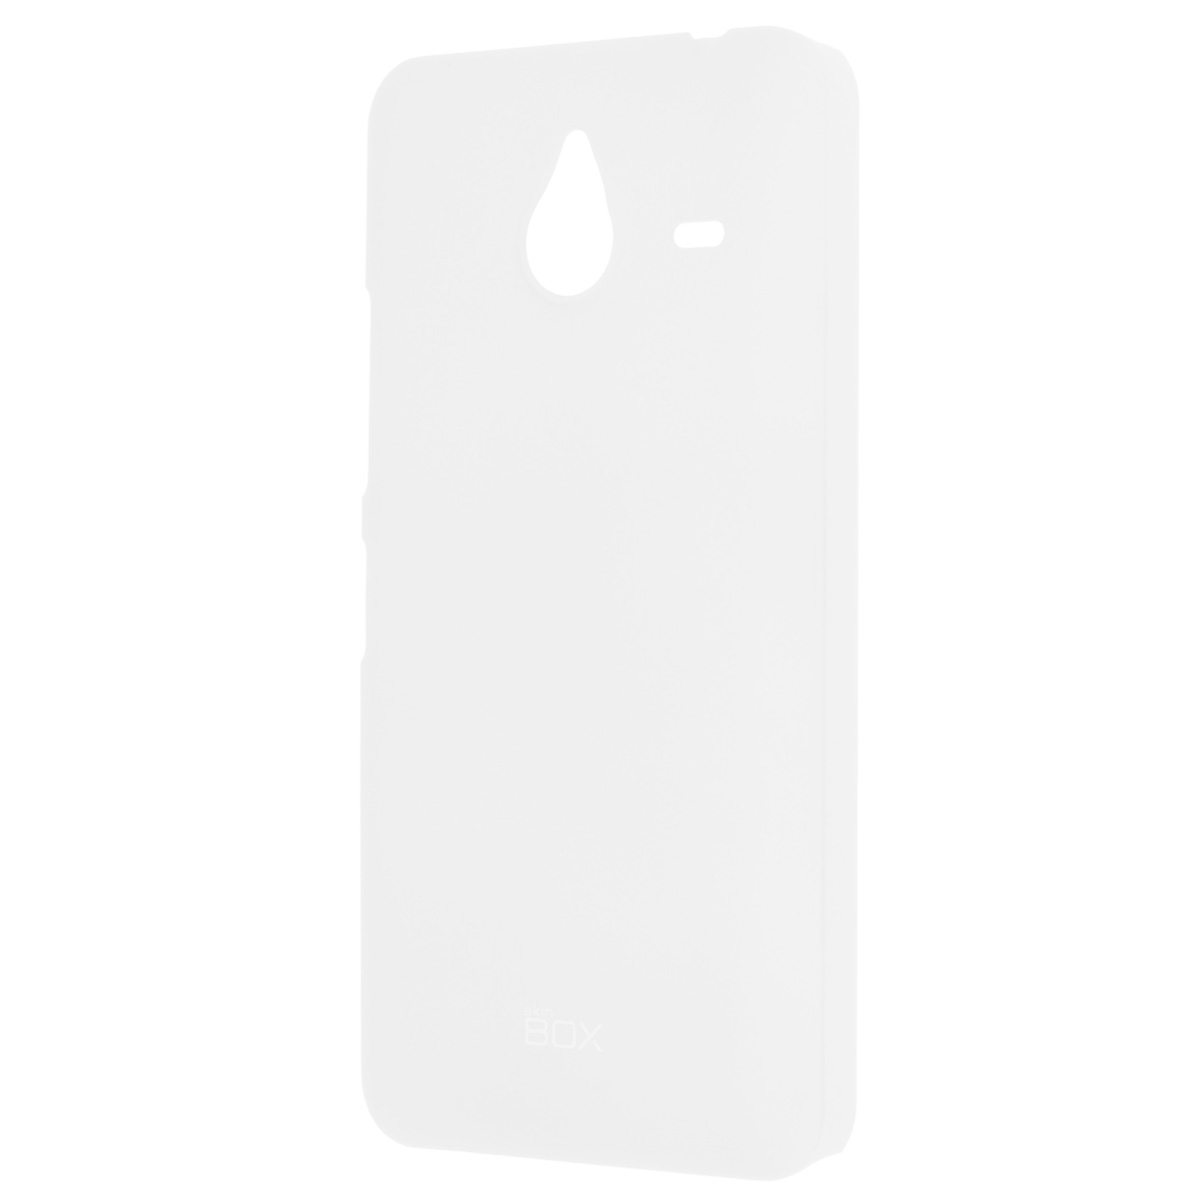 Skinbox Shield 4People чехол для Microsoft Lumia 640XL, White чехлы для телефонов skinbox накладка для htc desire 616 shield case 4people